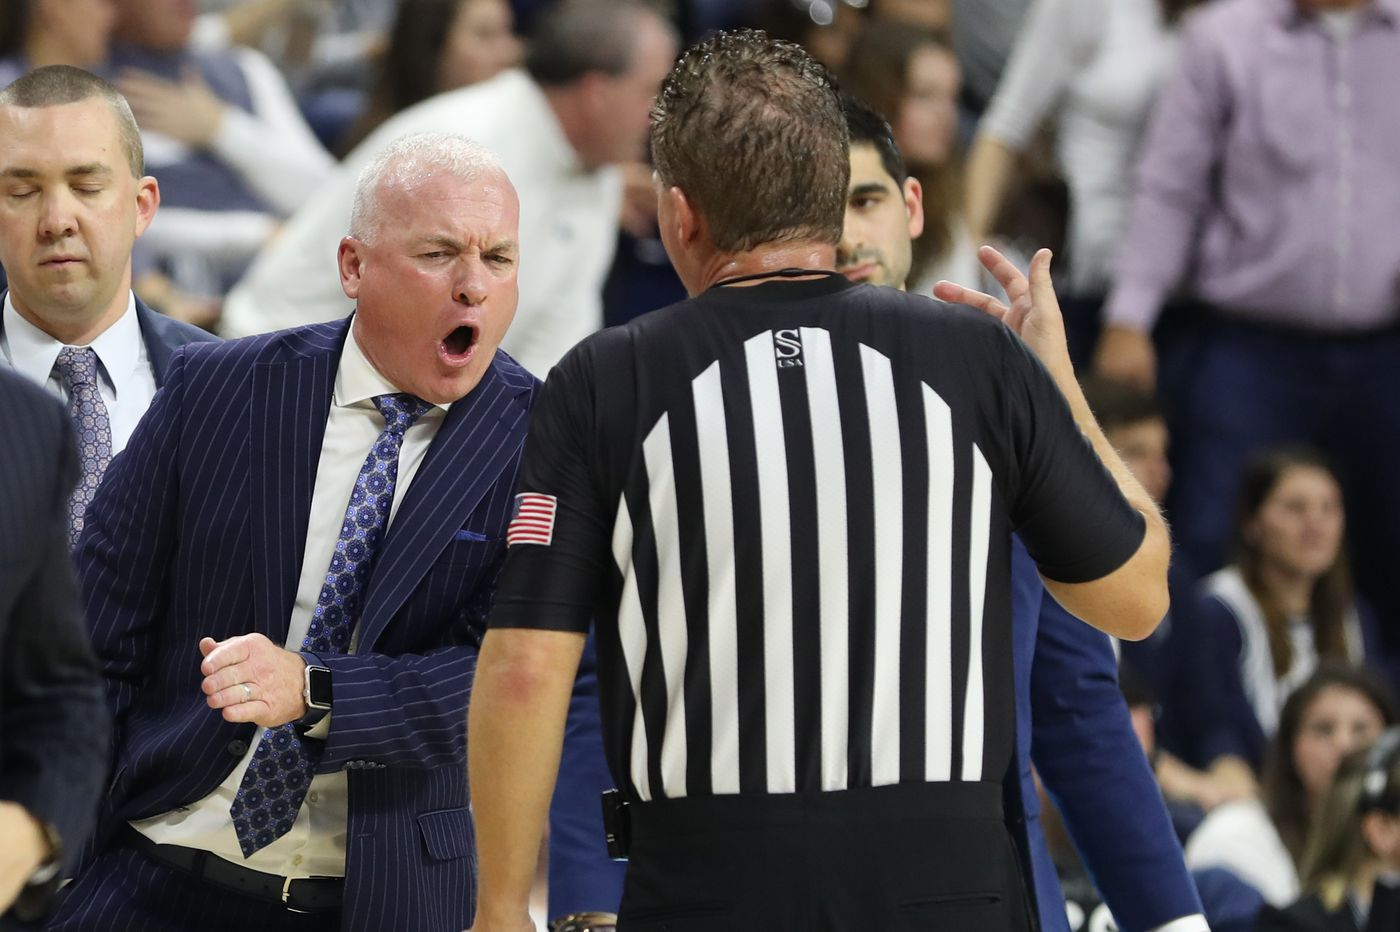 Penn State basketball coach, Delco native Pat Chambers referenced a 'noose' around a Black player's neck